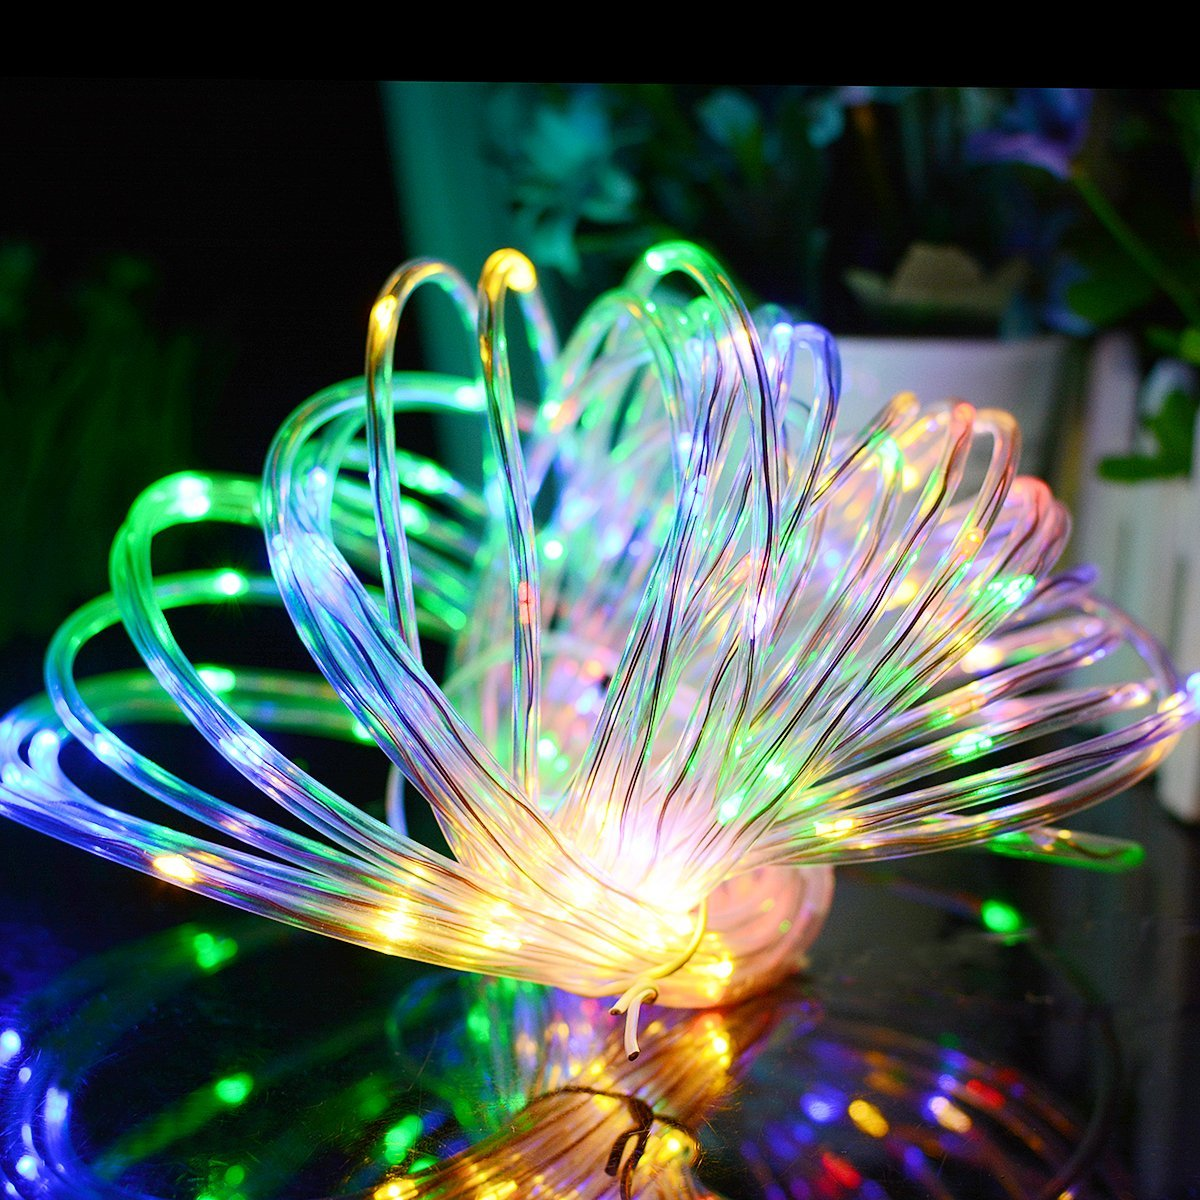 Solar Powered Rope lights 120 LEDs Holiday String Lights Outdoor Garden Party Lighting Rope String Lights Waterproof 2 Pieces